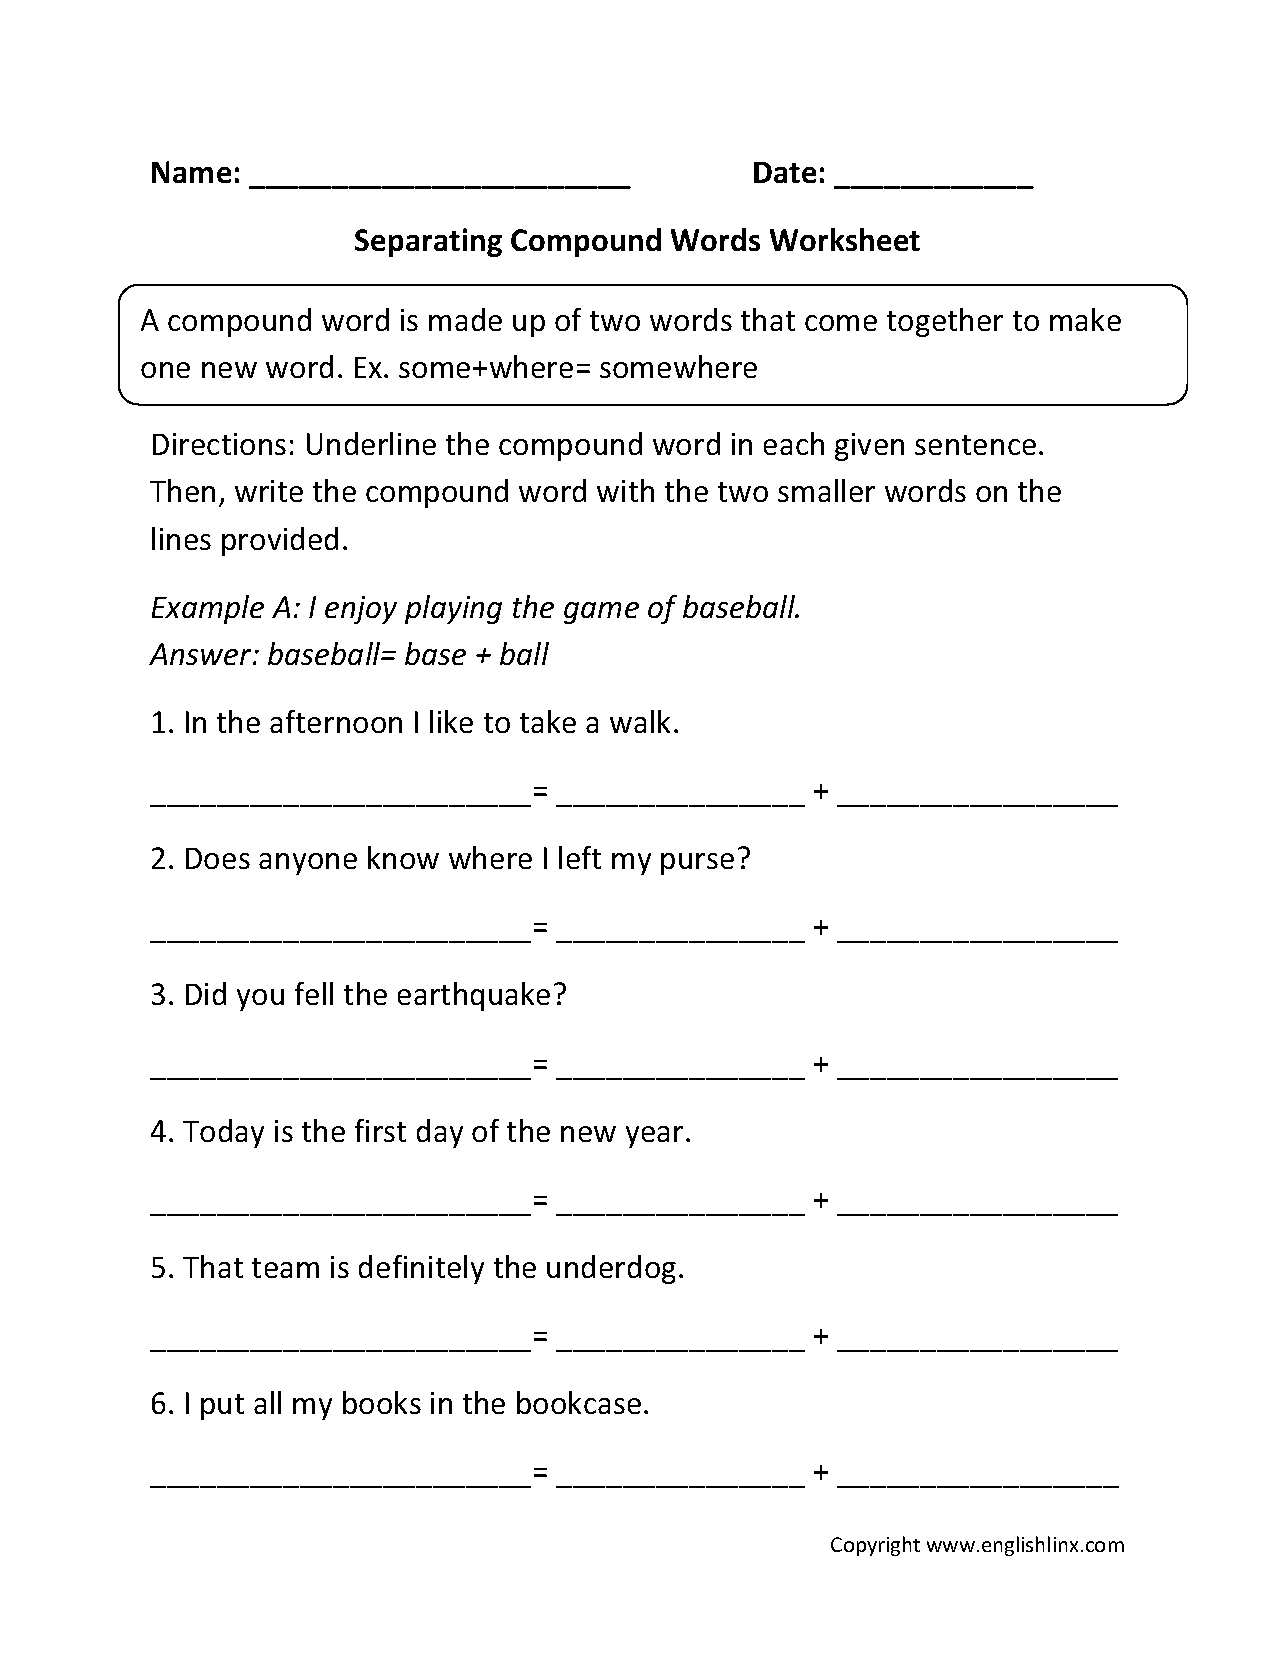 Worksheets Compound Words Worksheets englishlinx com compound words worksheets separating worksheets